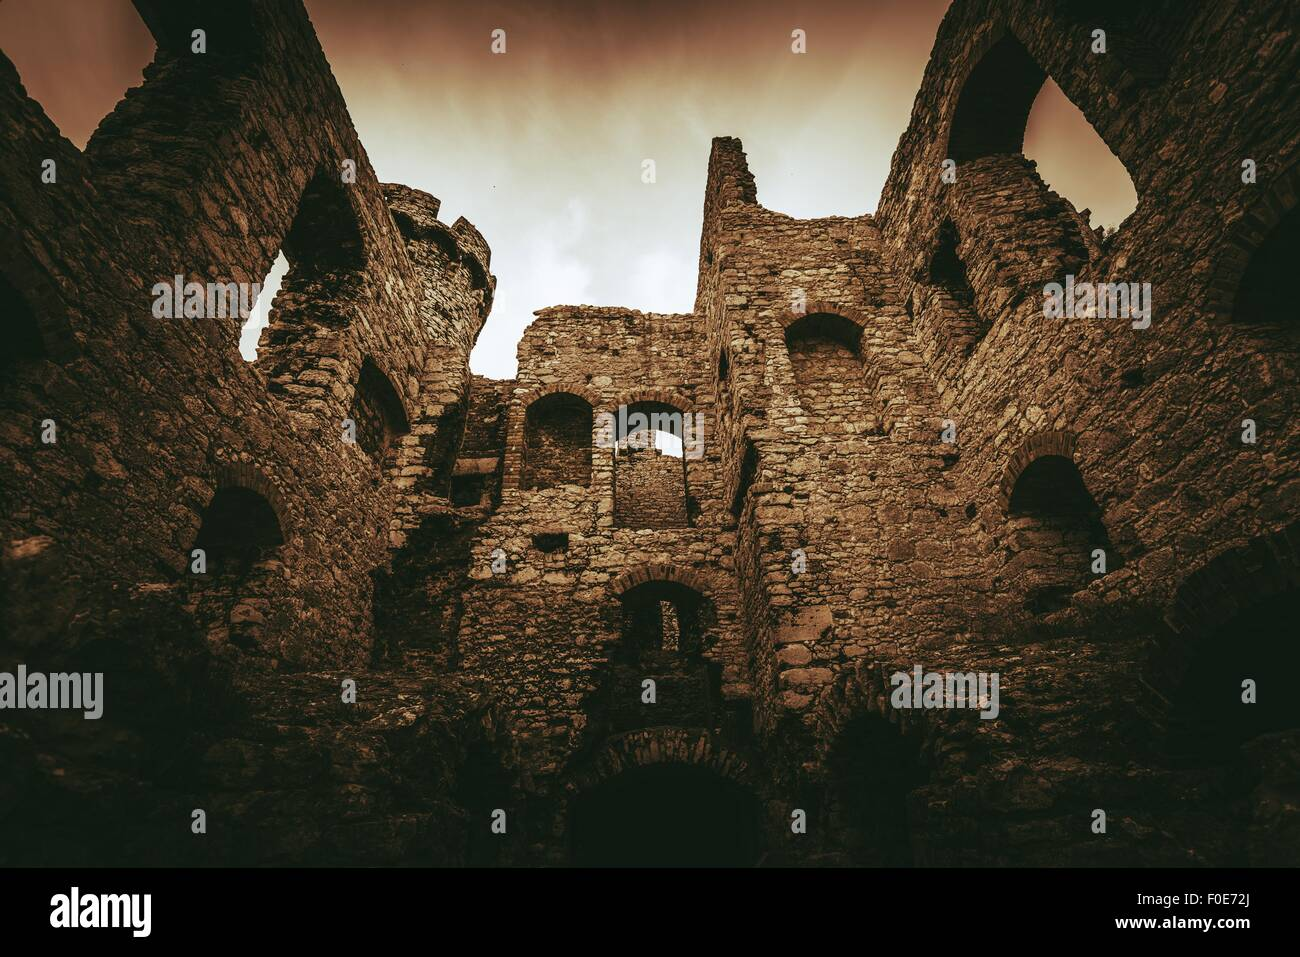 Castle Ruins in Ogrodzieniec, Poland, Europe. Medieval Castle. - Stock Image